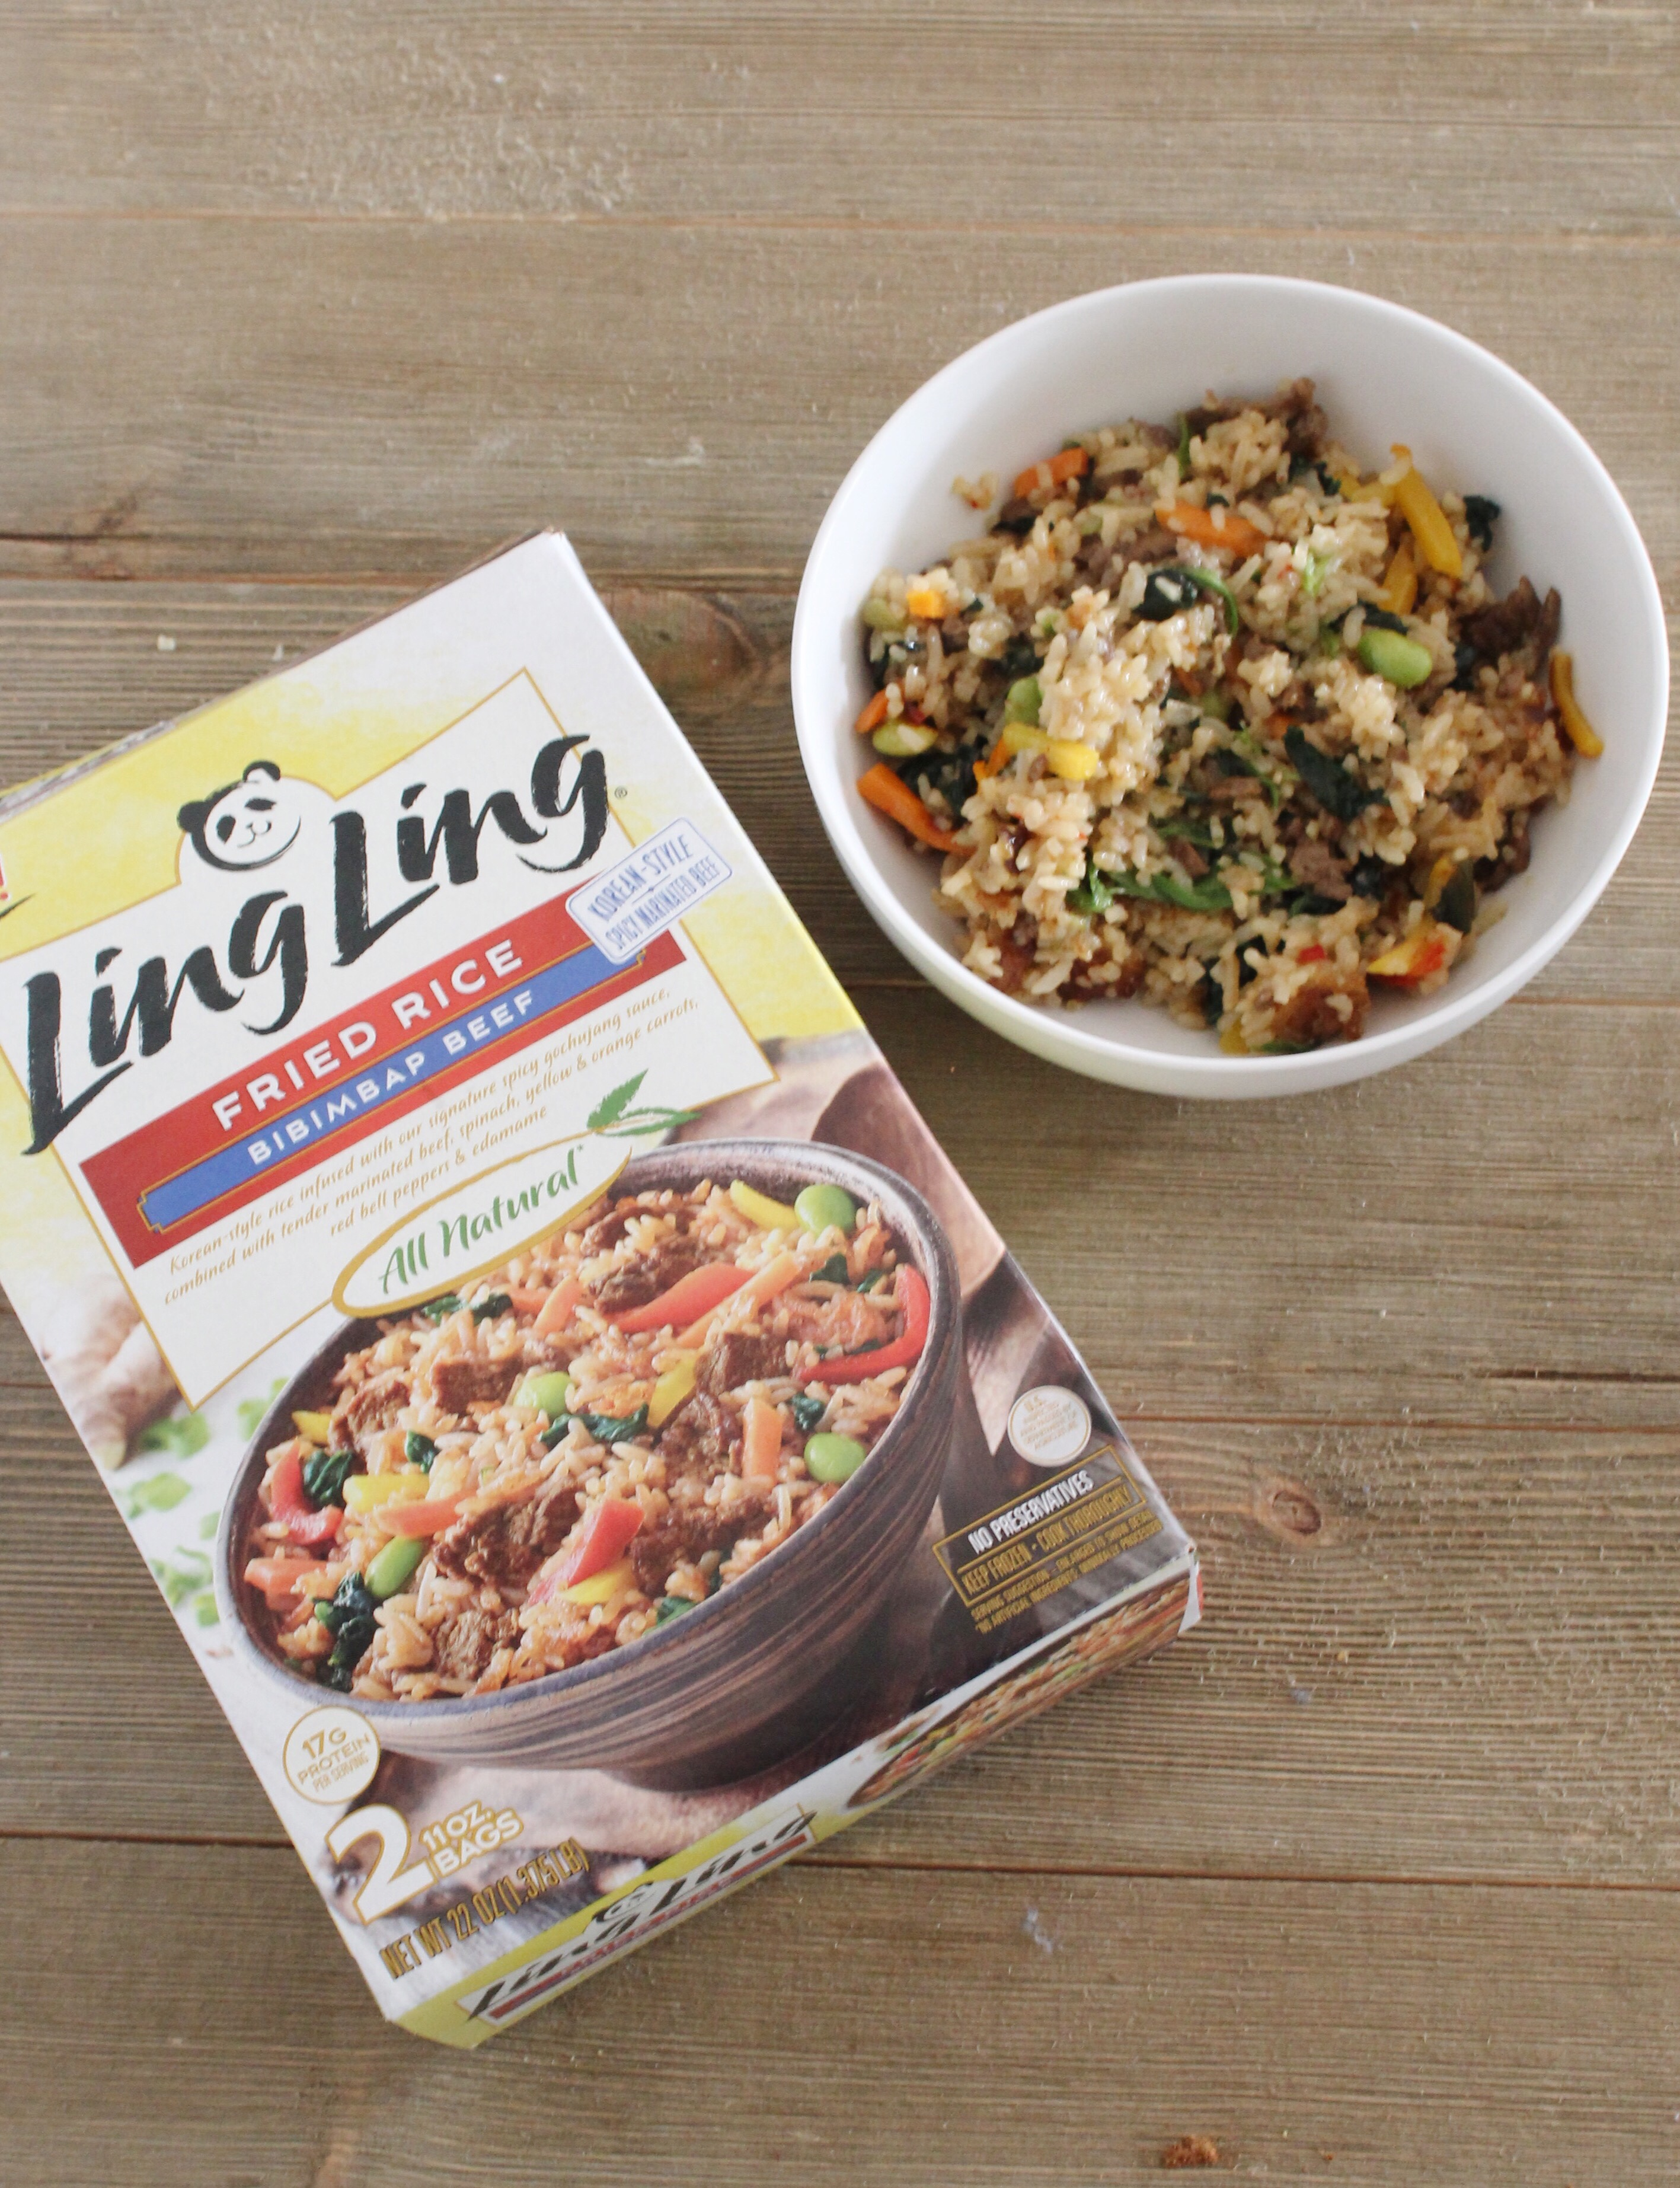 Fun ways to celebrate Chinese New Year. Ling Ling Asian Foods, how to make Bibimbap Beef Fried Rice